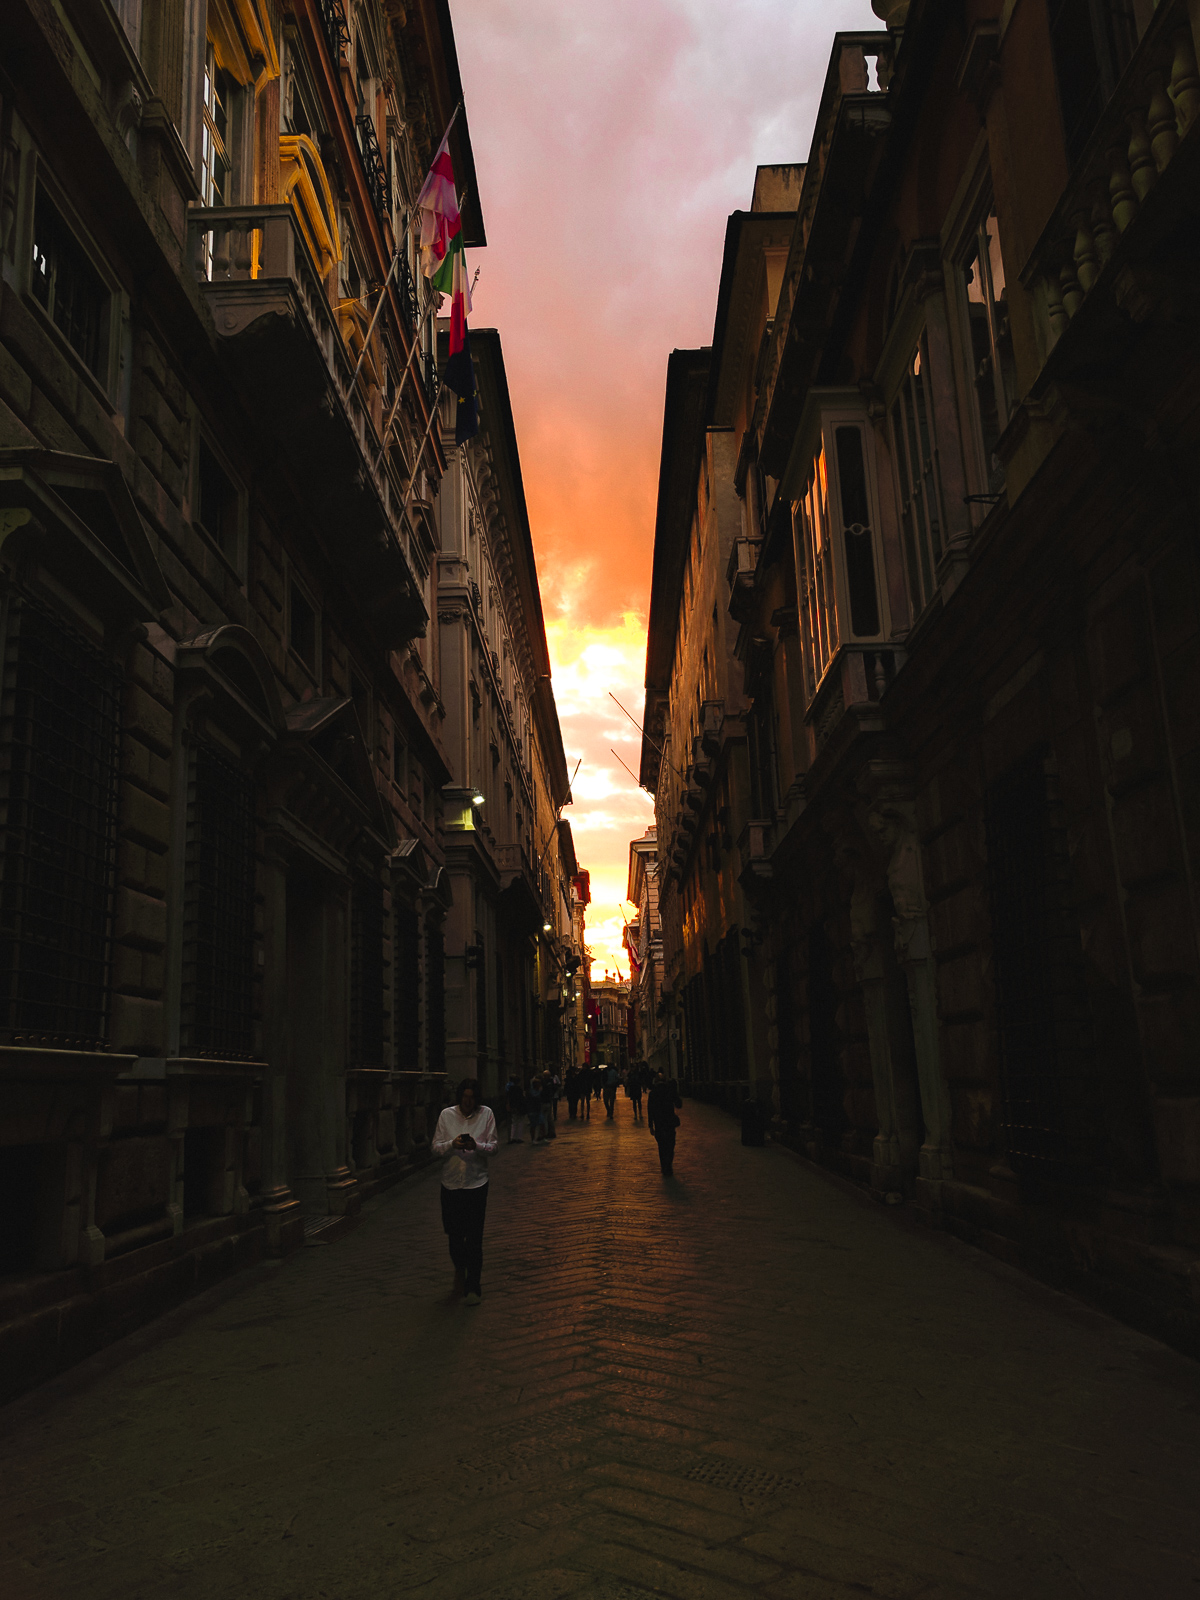 Via Garibaldi in Genoa at sunset.